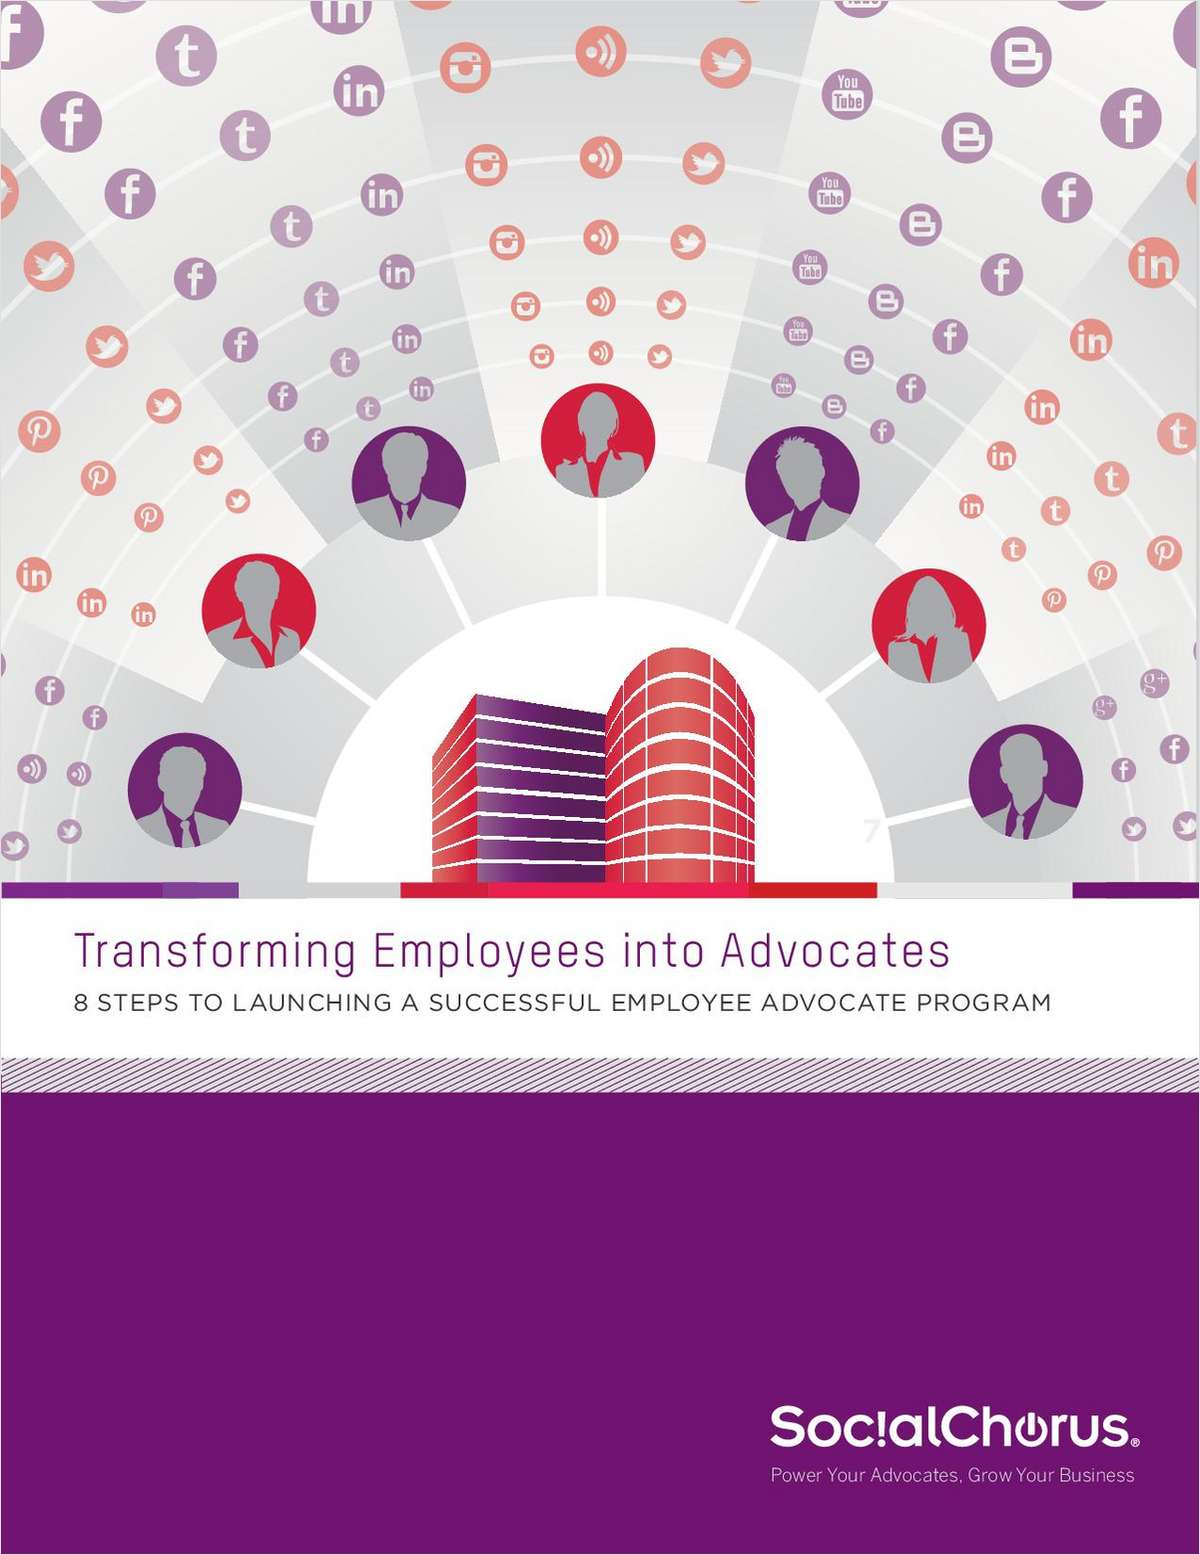 8 Steps to Launching a Successful Employee Advocate Program